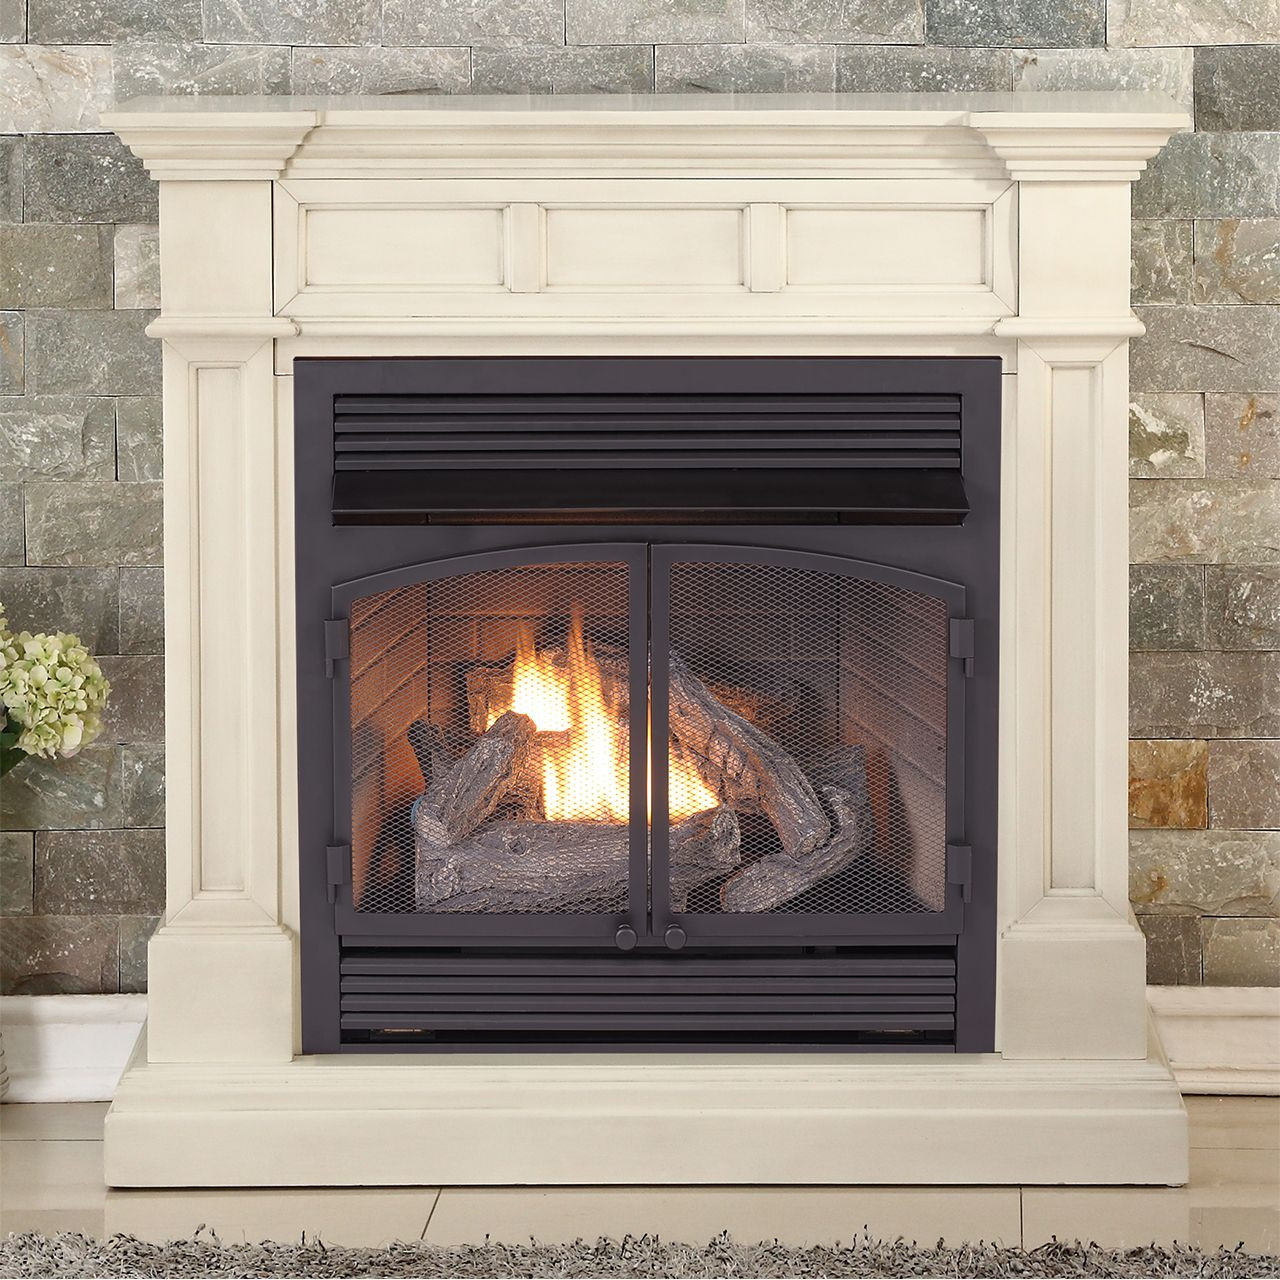 hs150tt apple spice procom heating ventless gel fuel fireplace in